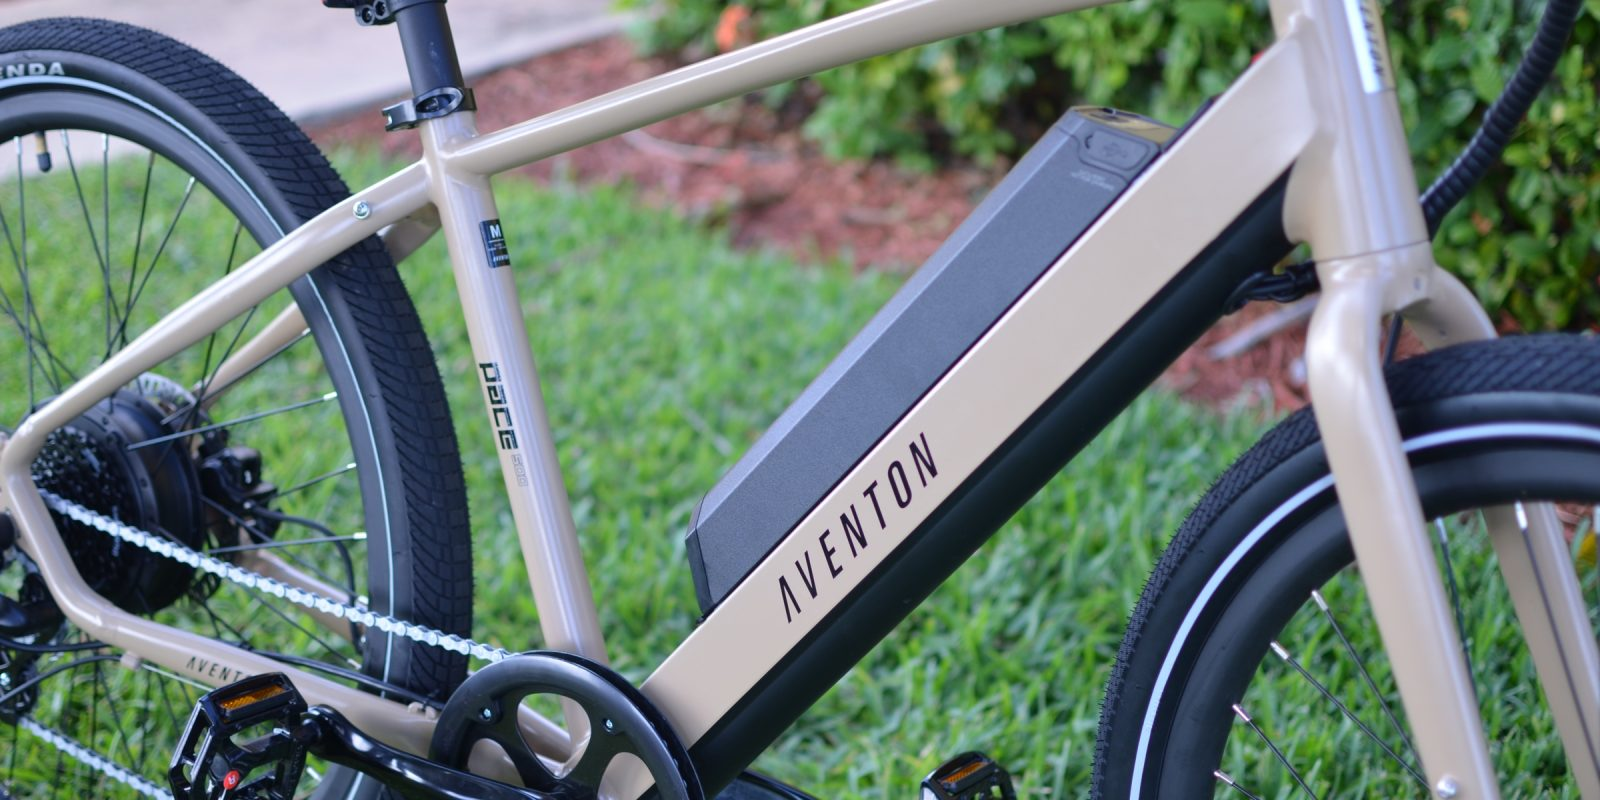 Aventon Pace 500 review: A 28 MPH e-bike for $1,399 is a commuting dream